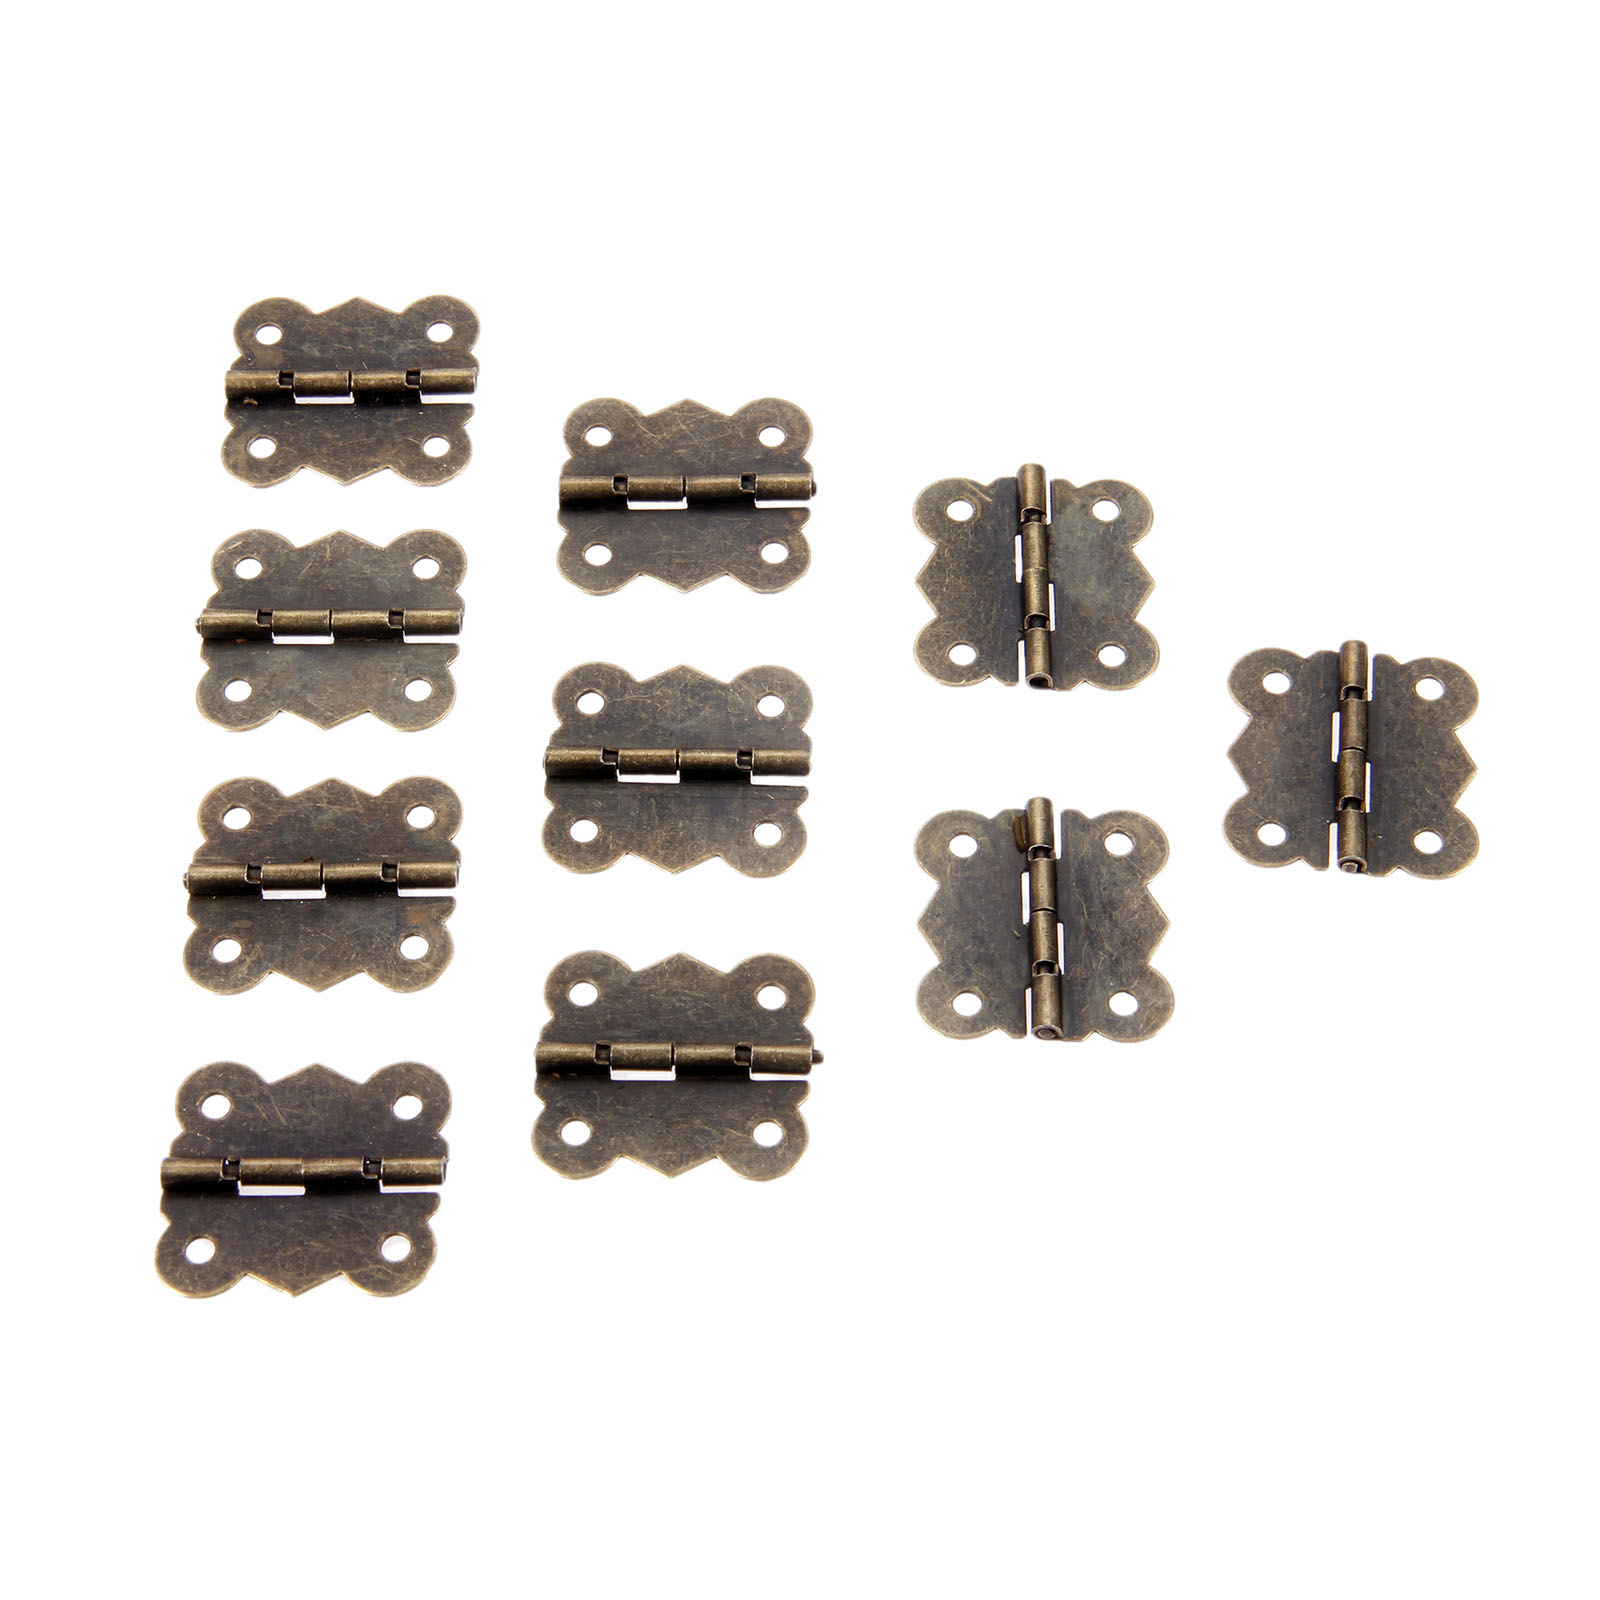 10Pcs 39x27mm Antique Bronze Cabinet Door Hinges Furniture Accessories Jewelry Wood Boxes Hinge Furniture Fittings For Cabinets in Cabinet Hinges from Home Improvement